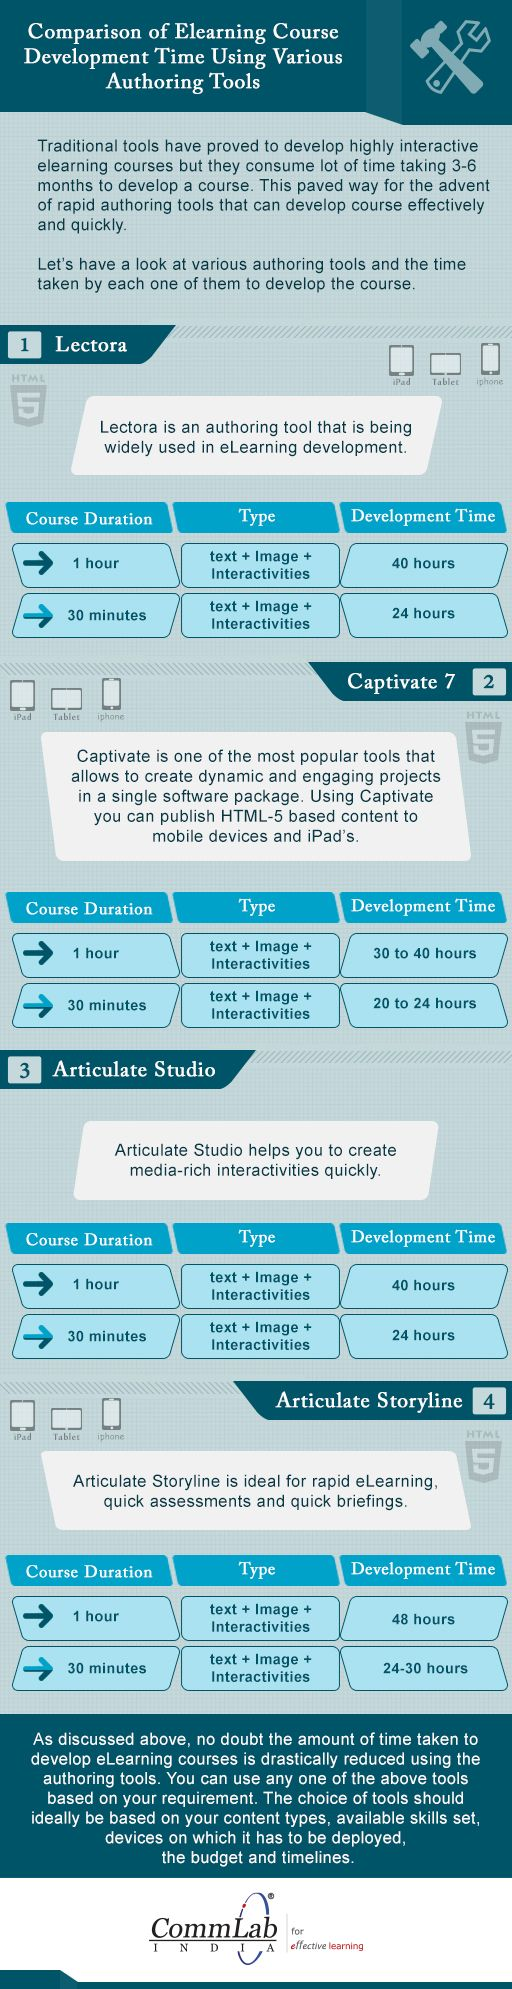 Comparison of #eLearning Development Time Using Tools